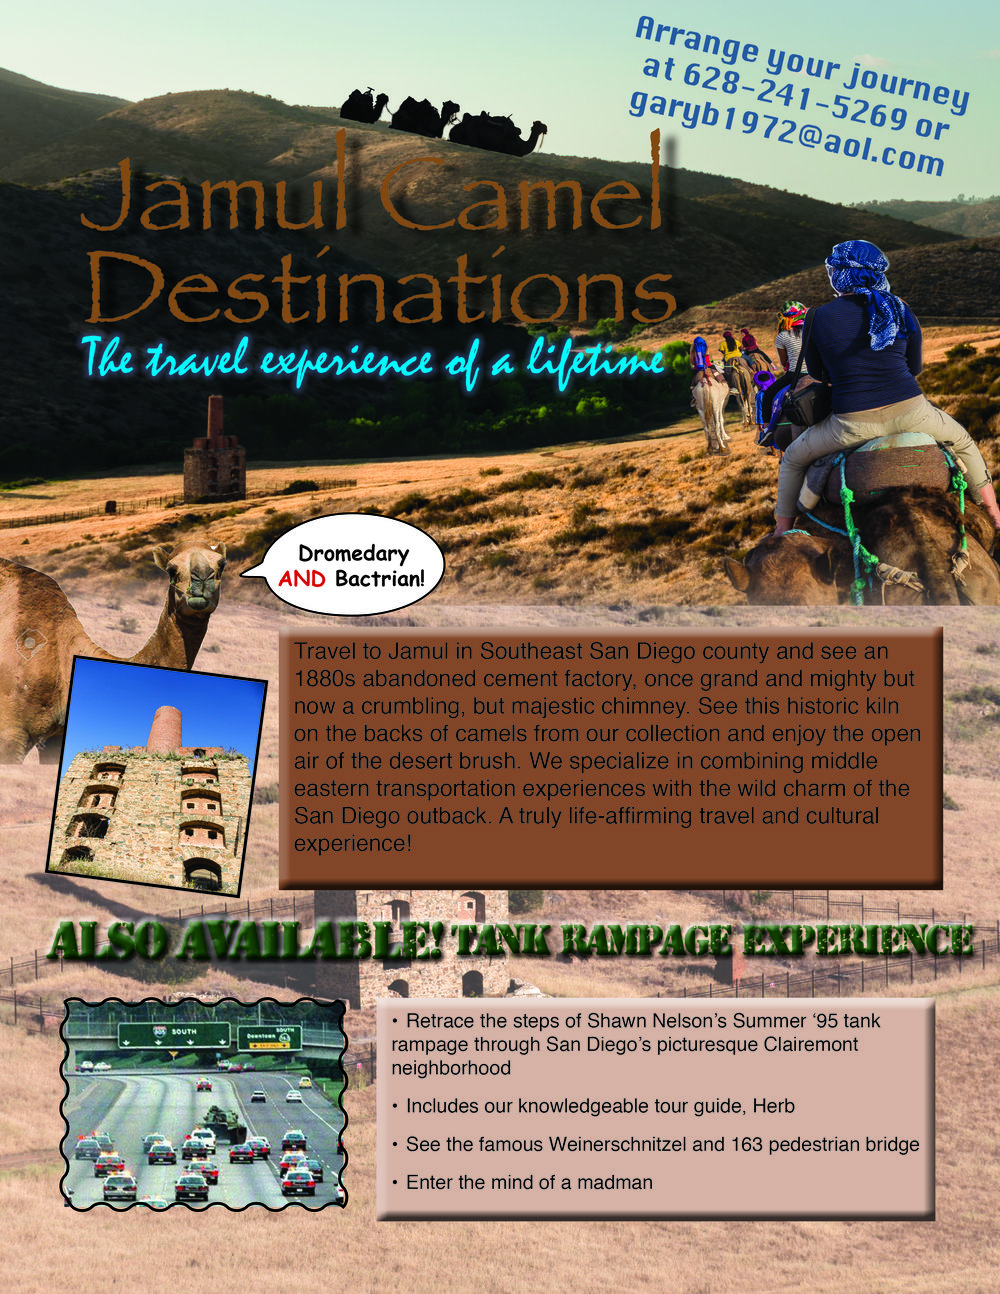 jamul camel destinations tm.jpg